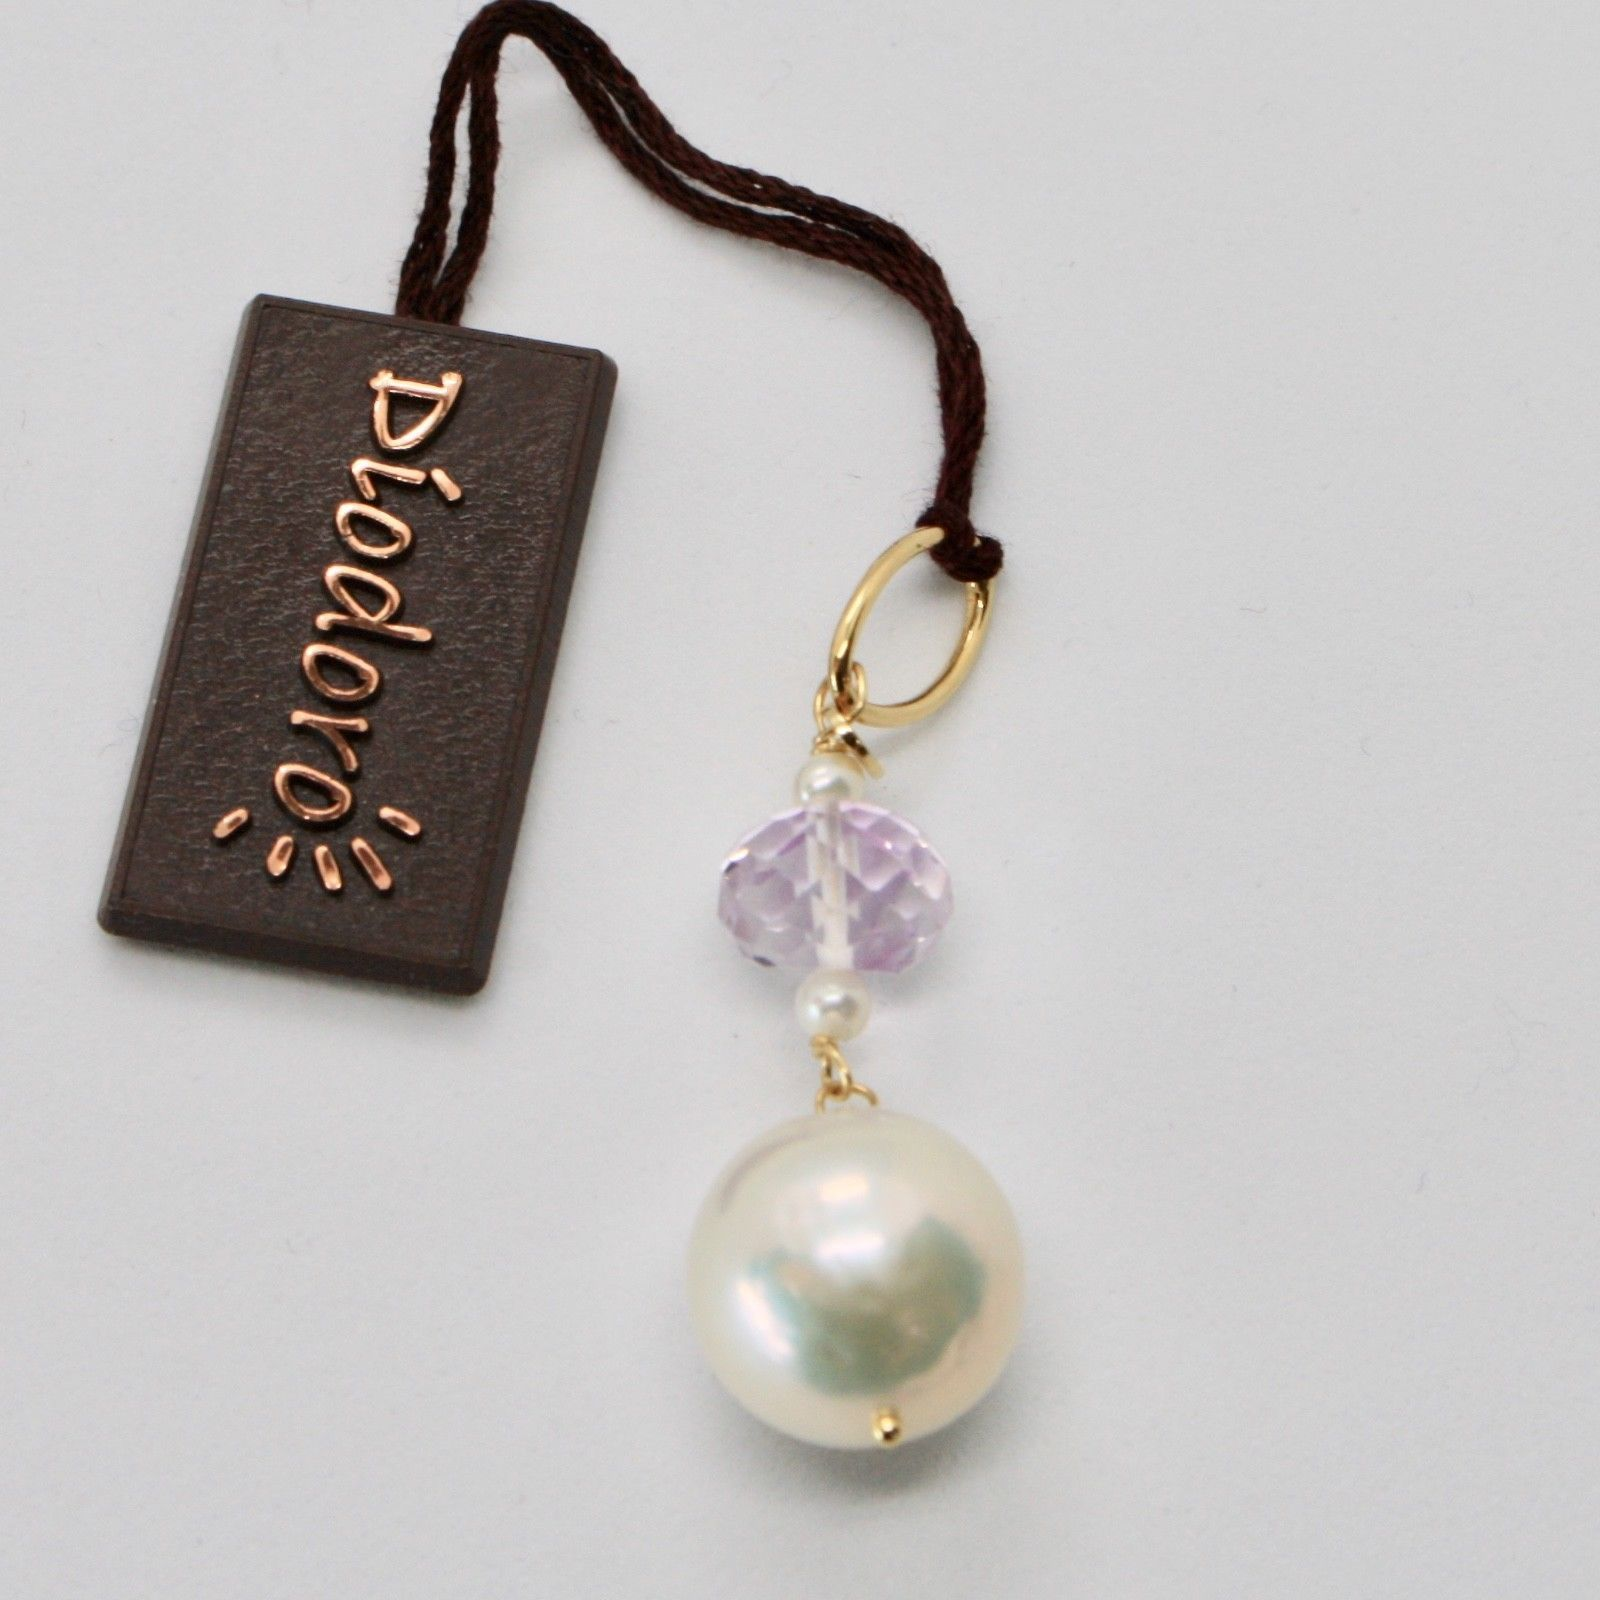 PENDANT YELLOW GOLD 18KT WITH PEARL WHITE OF WATER DOLCE AND AMETHYST PINK